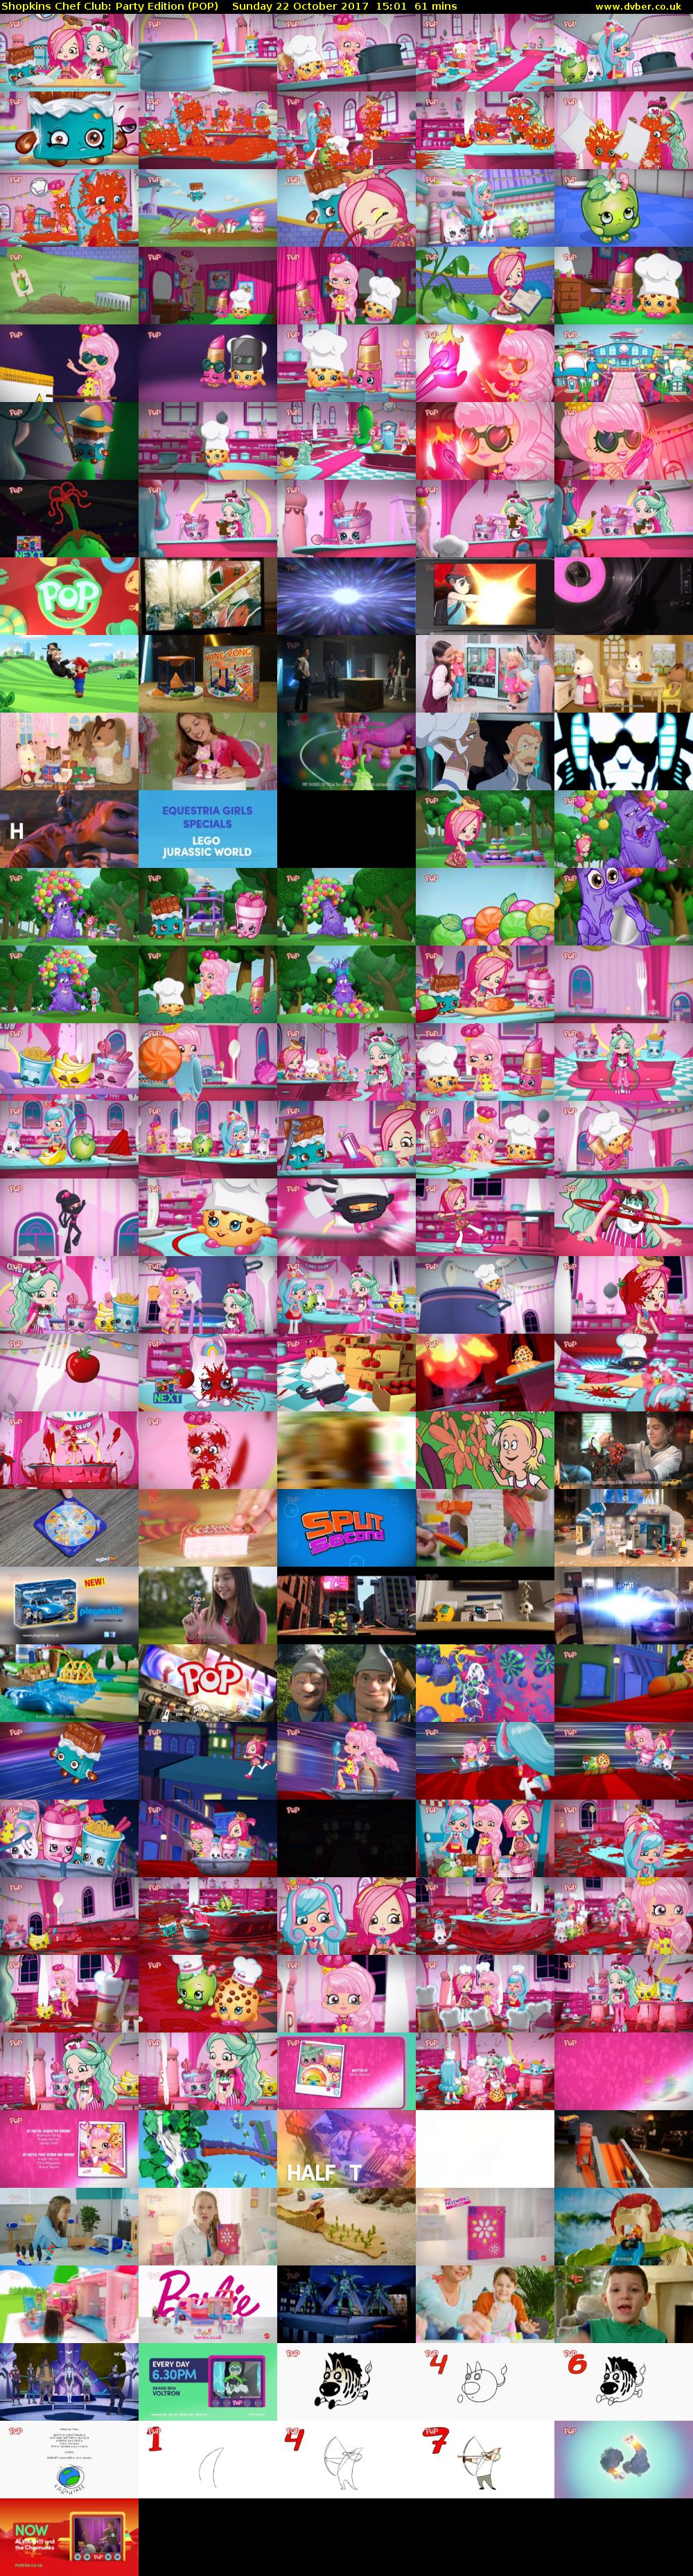 Shopkins Chef Club: Party Edition (POP) Sunday 22 October 2017 15:01 - 16:02